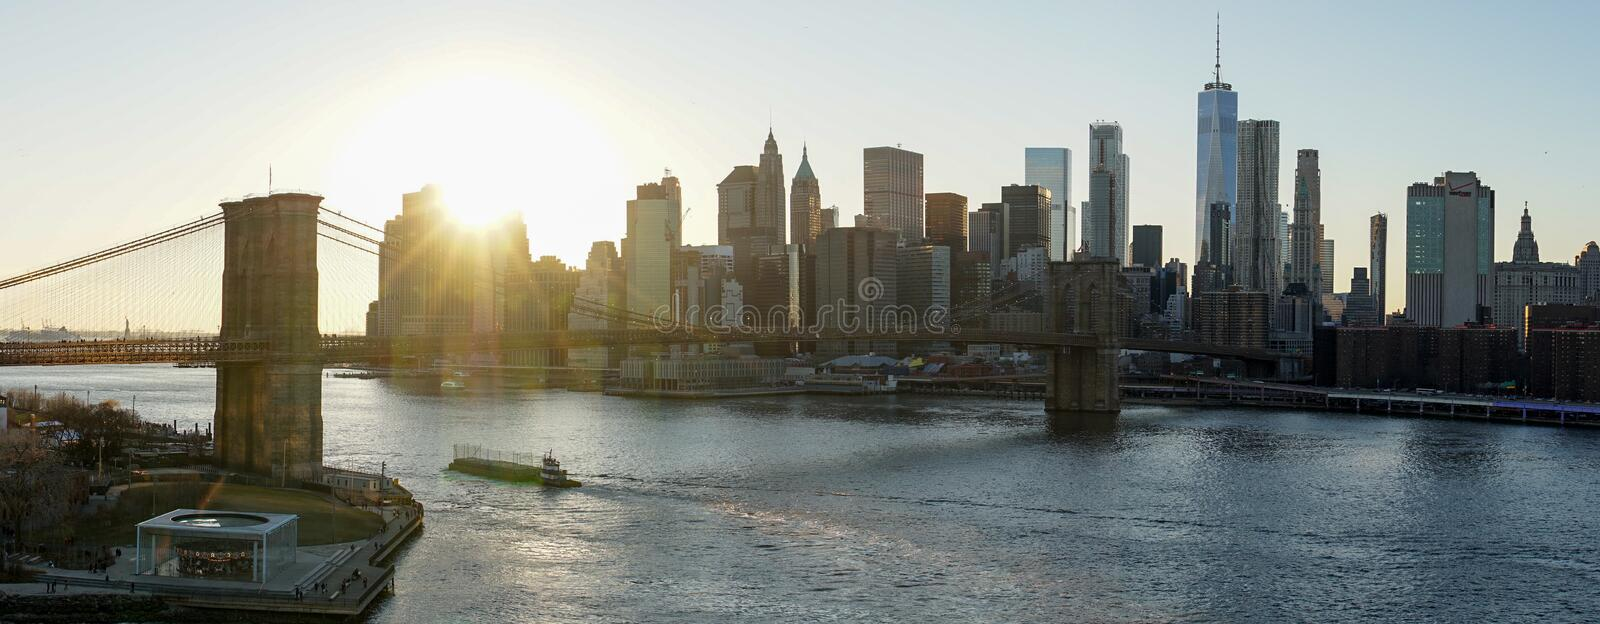 Manhattan Skyline seen from the top of Manhattan Bridge in New York City. royalty free stock images